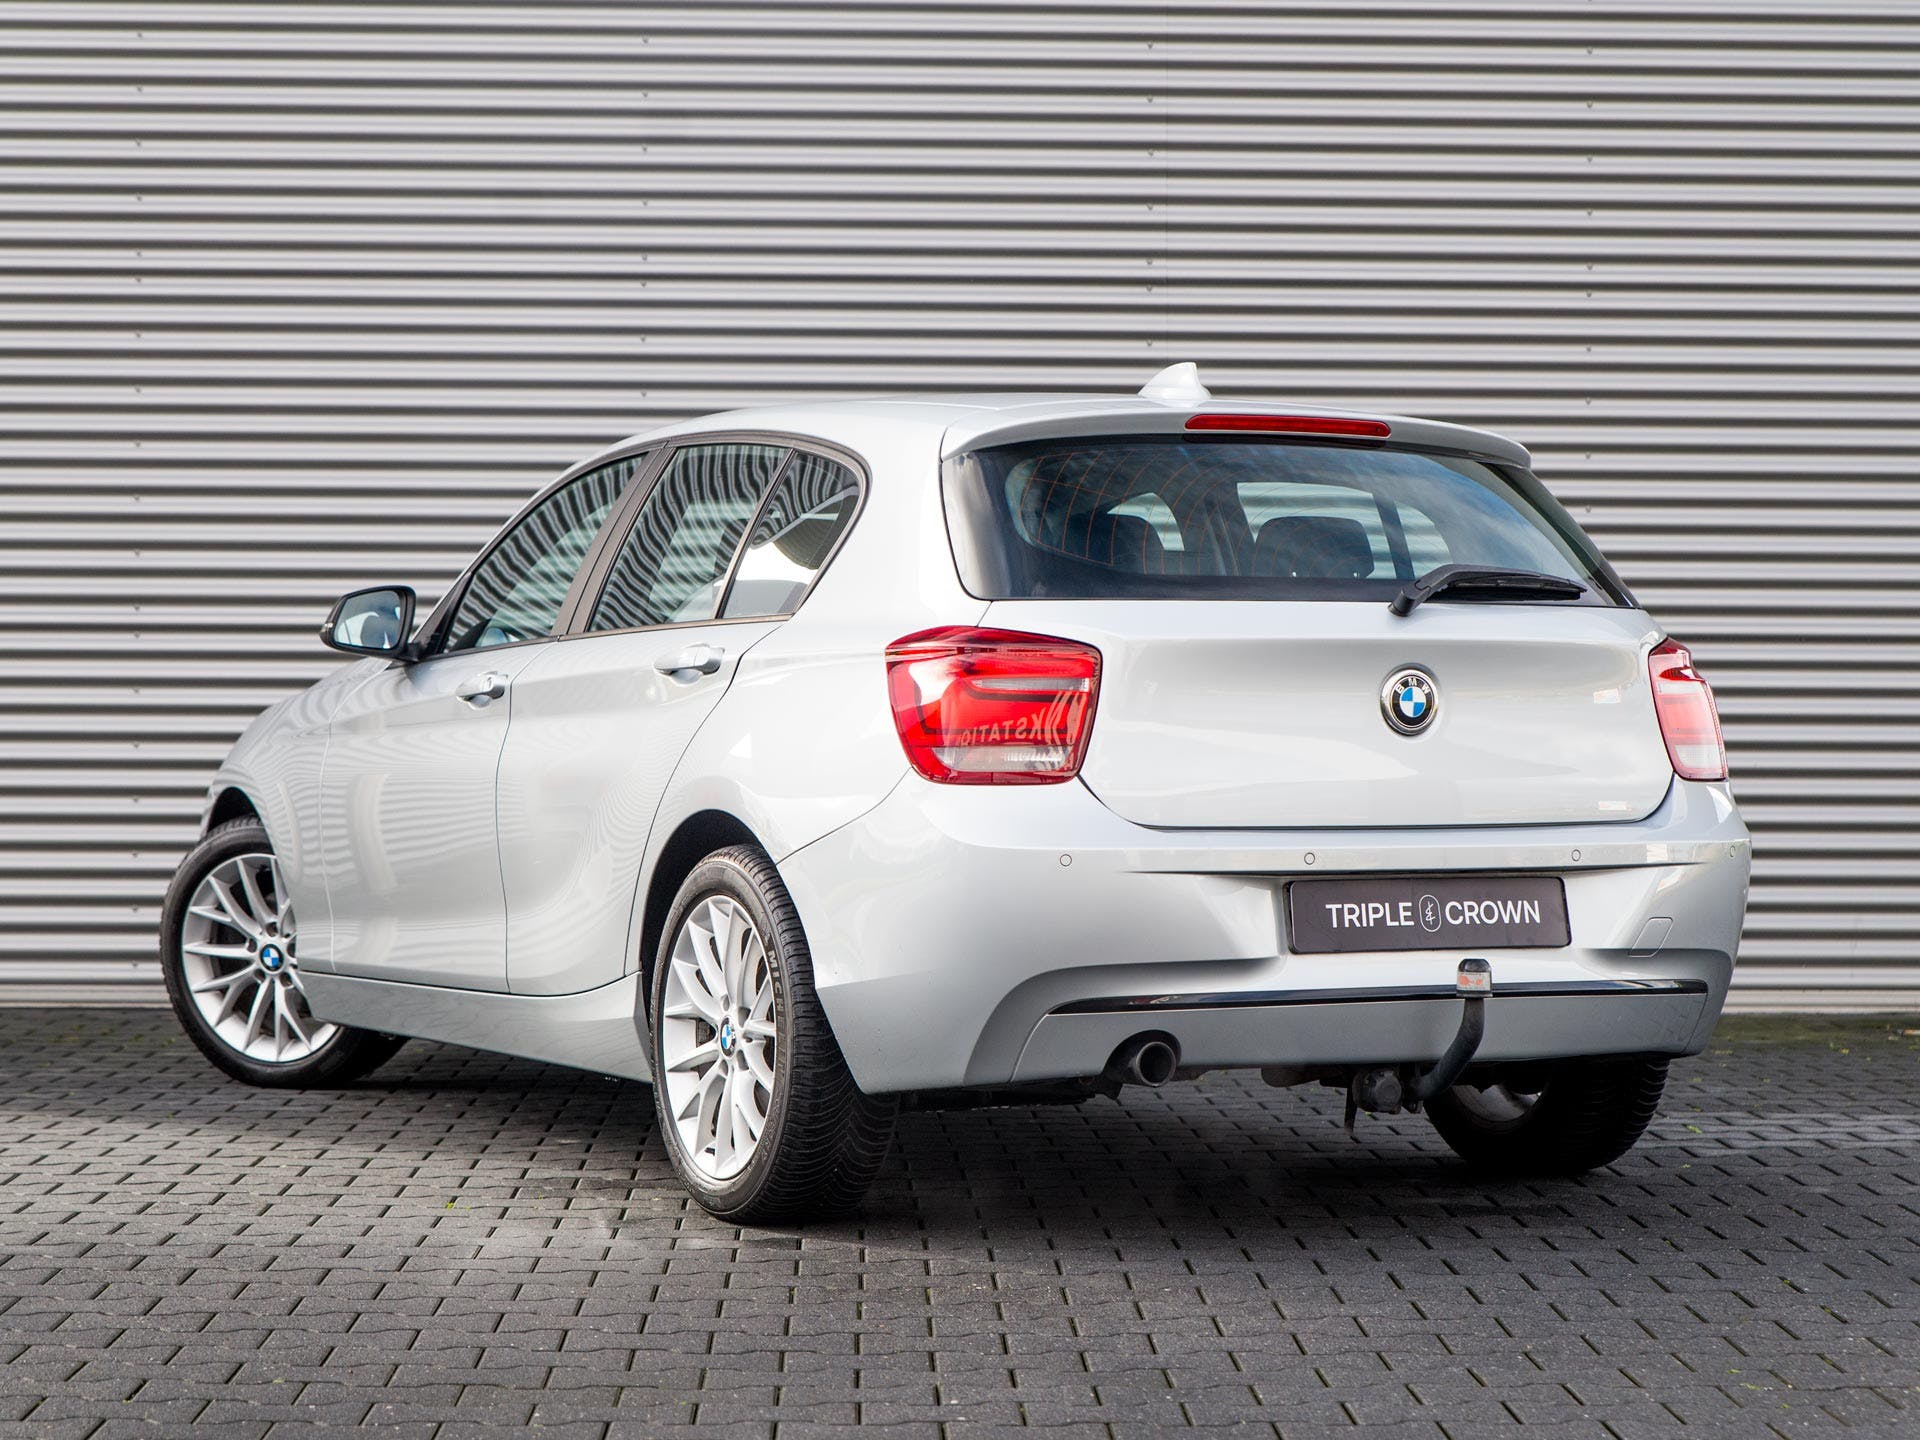 Tweedehands BMW 1 Serie occasion